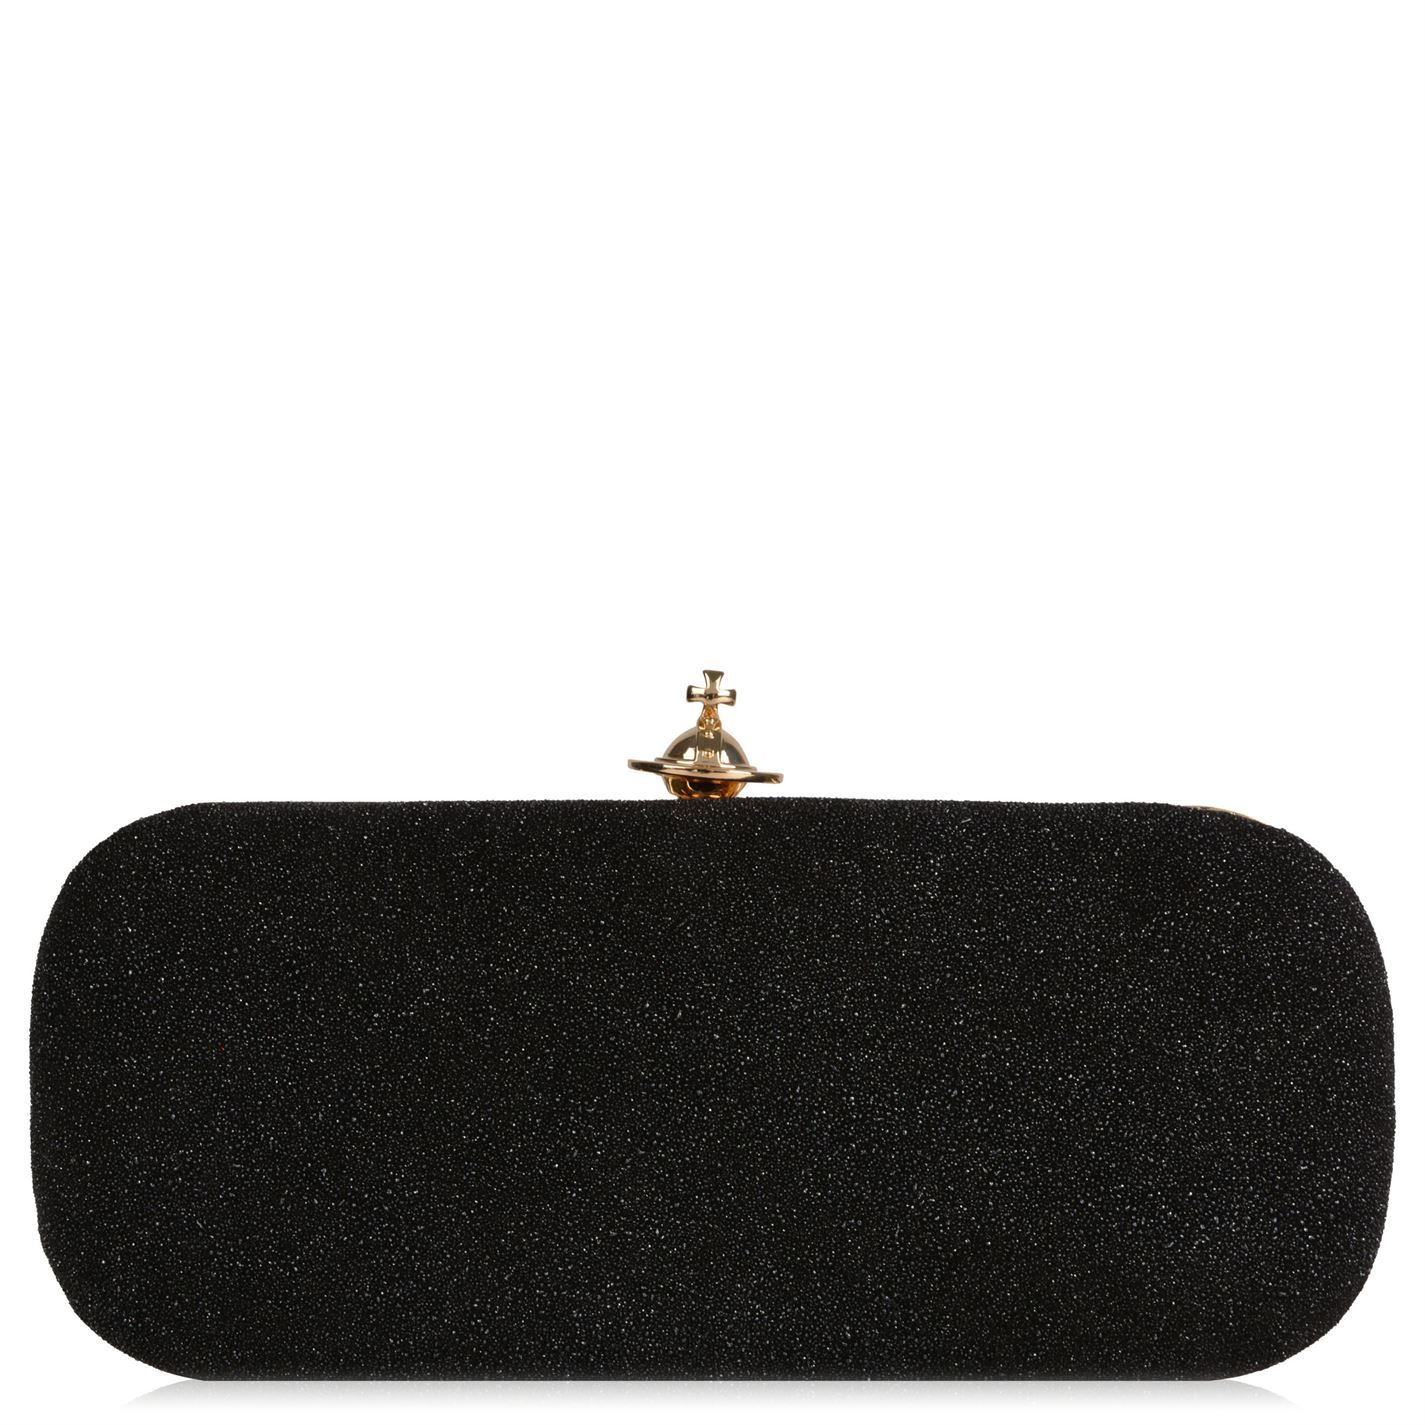 THE PERFECT EVENING BAG| Vivienne Westwood | Glitter Clutch Bag